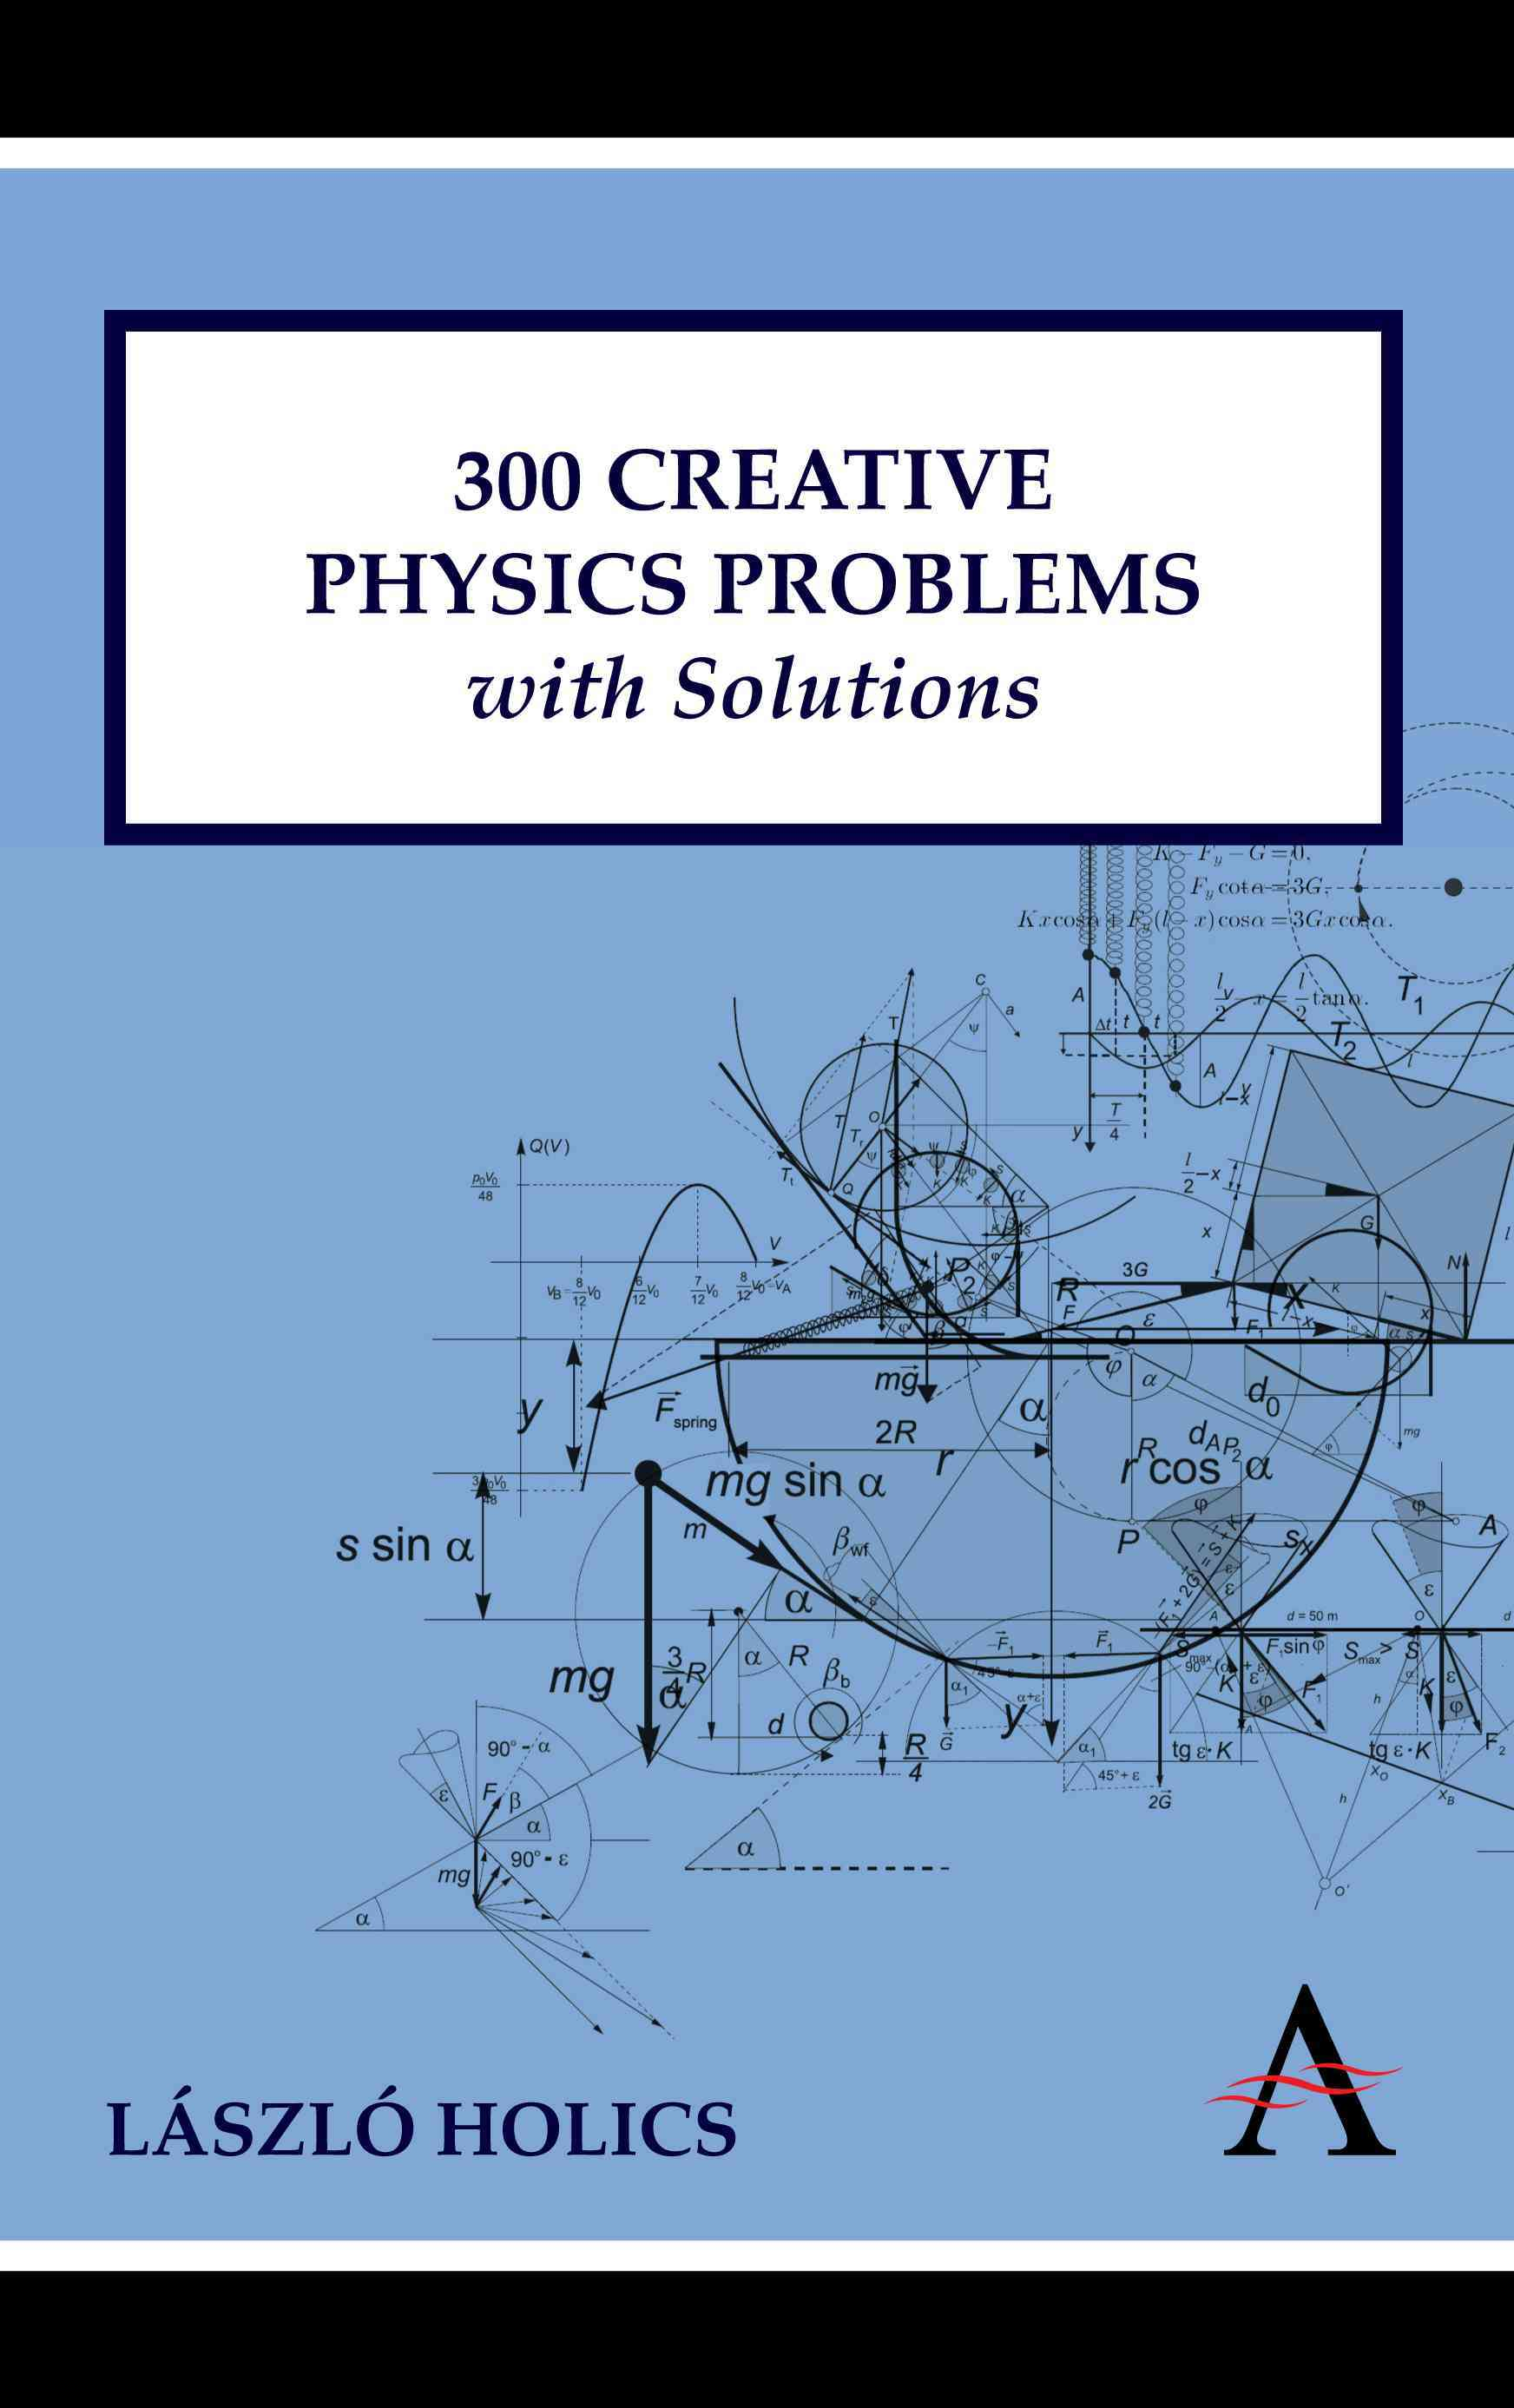 300 Creative Physics Problems With Solutions By Holics, Laszlo/ Dingle, Adrian (ADP)